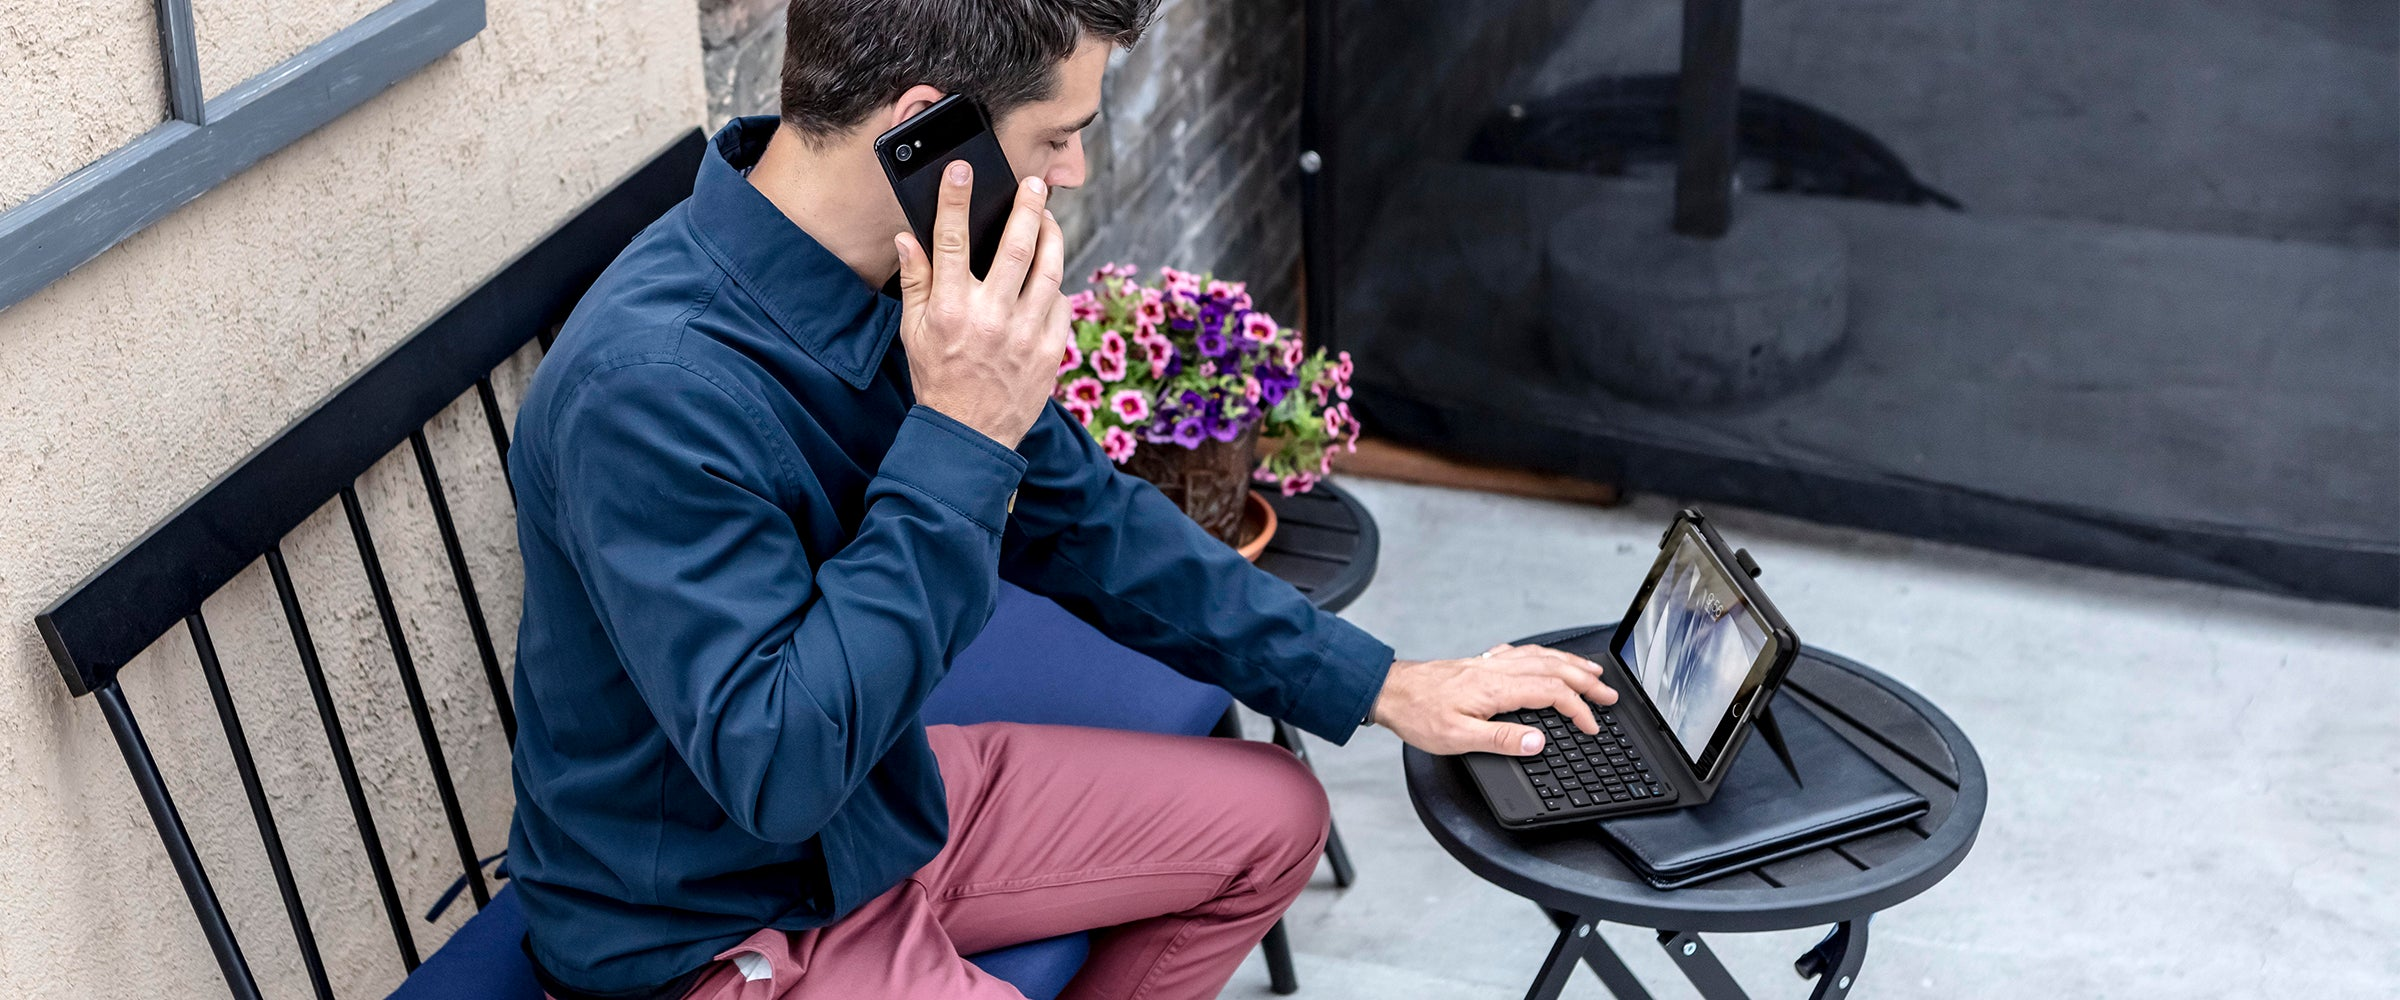 Man talking on a phone while using an ipad with a messenger folio keyboard